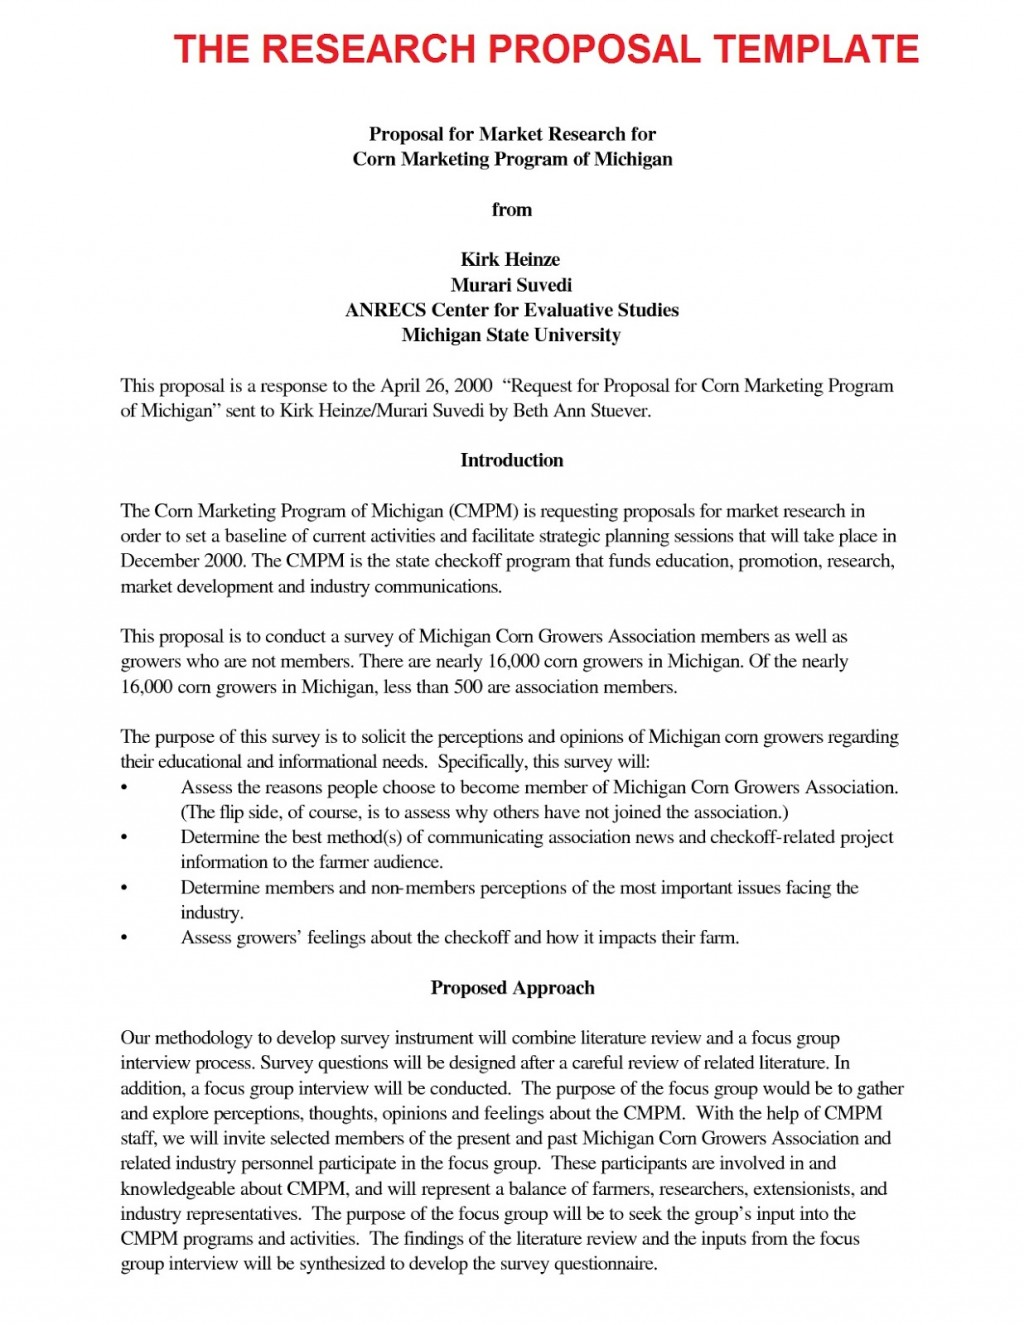 015 How To Write Research Paper Proposal Sample Amazing A Template In Apa Format Large